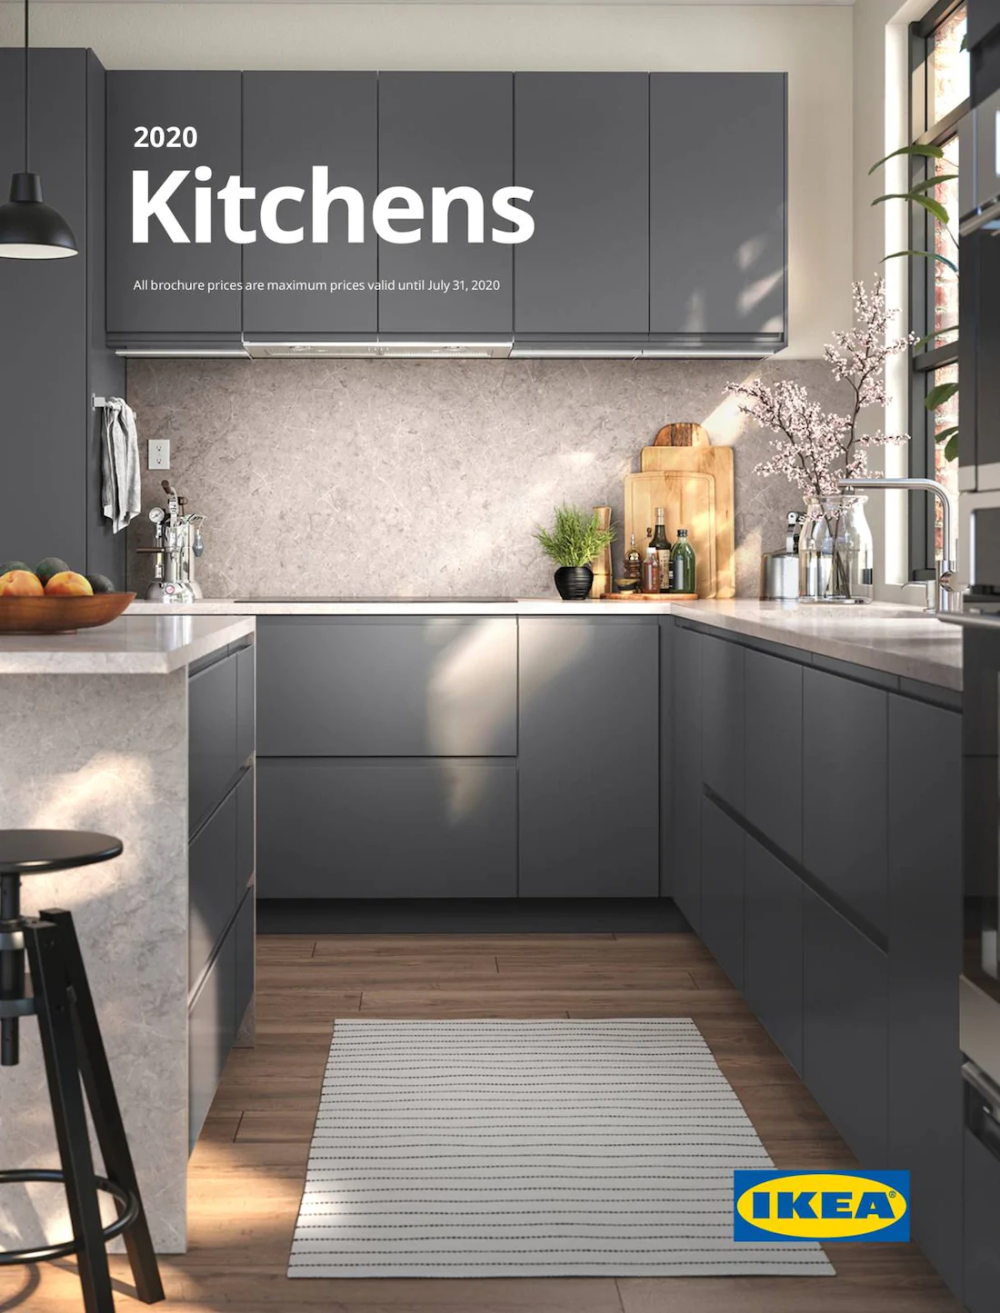 Ikea Kitchen Brochure 2020